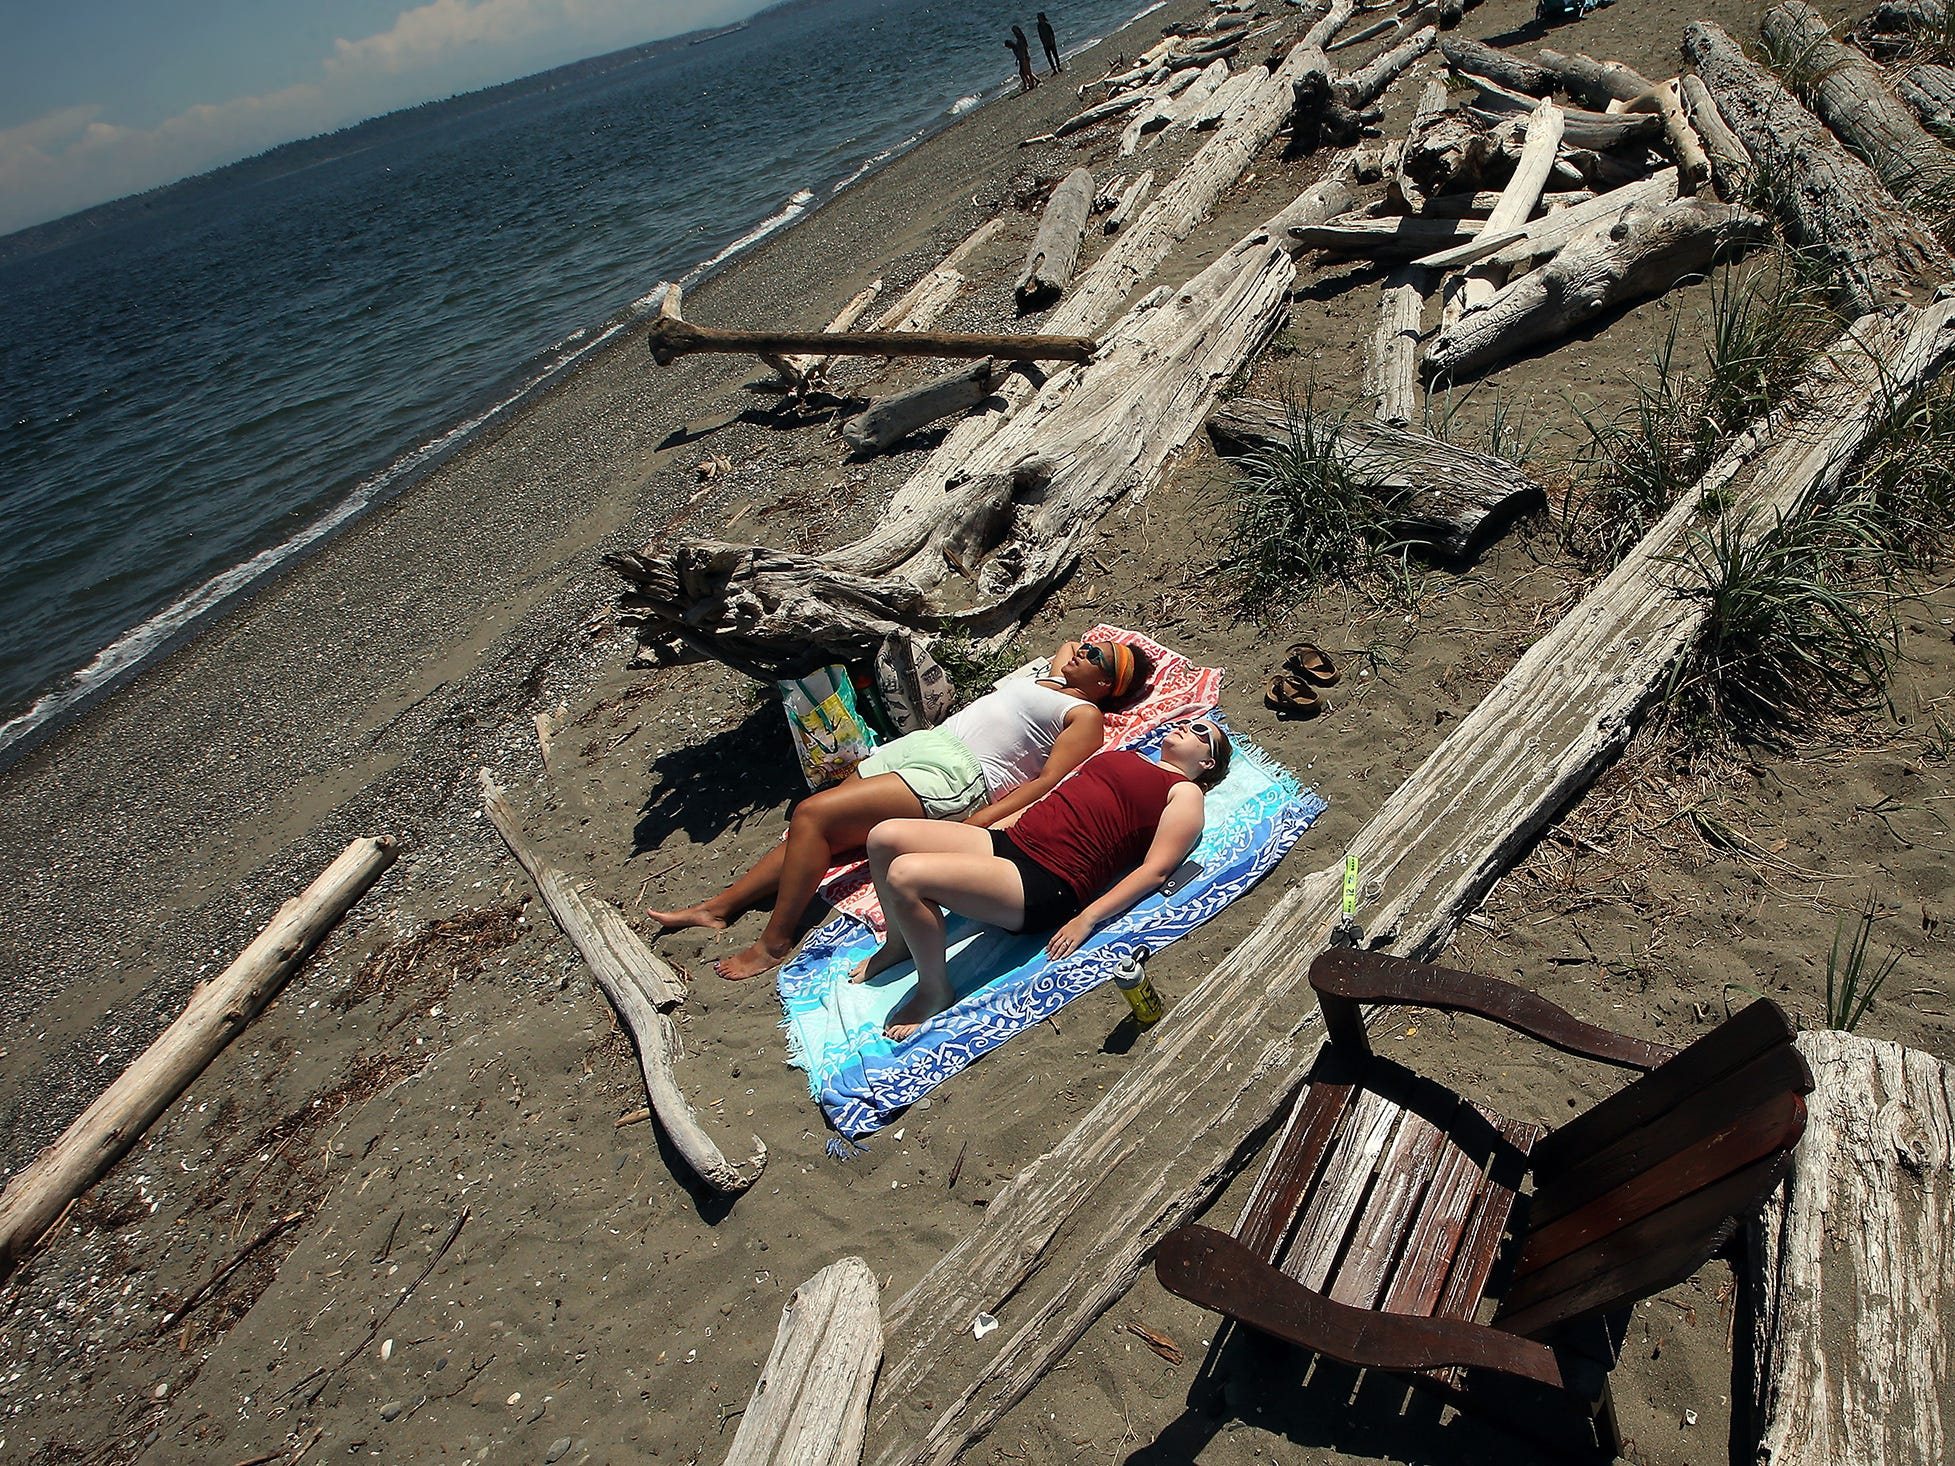 Friends Mikala Cummins, of Bainbridge Island, (front) and Shawna Nelson, of Ketchikan Alaska, sunbathe among the driftwood logs on the beach at Fay Bainbridge Park on Bainbridge Island on Wednesday, May 23, 2018.